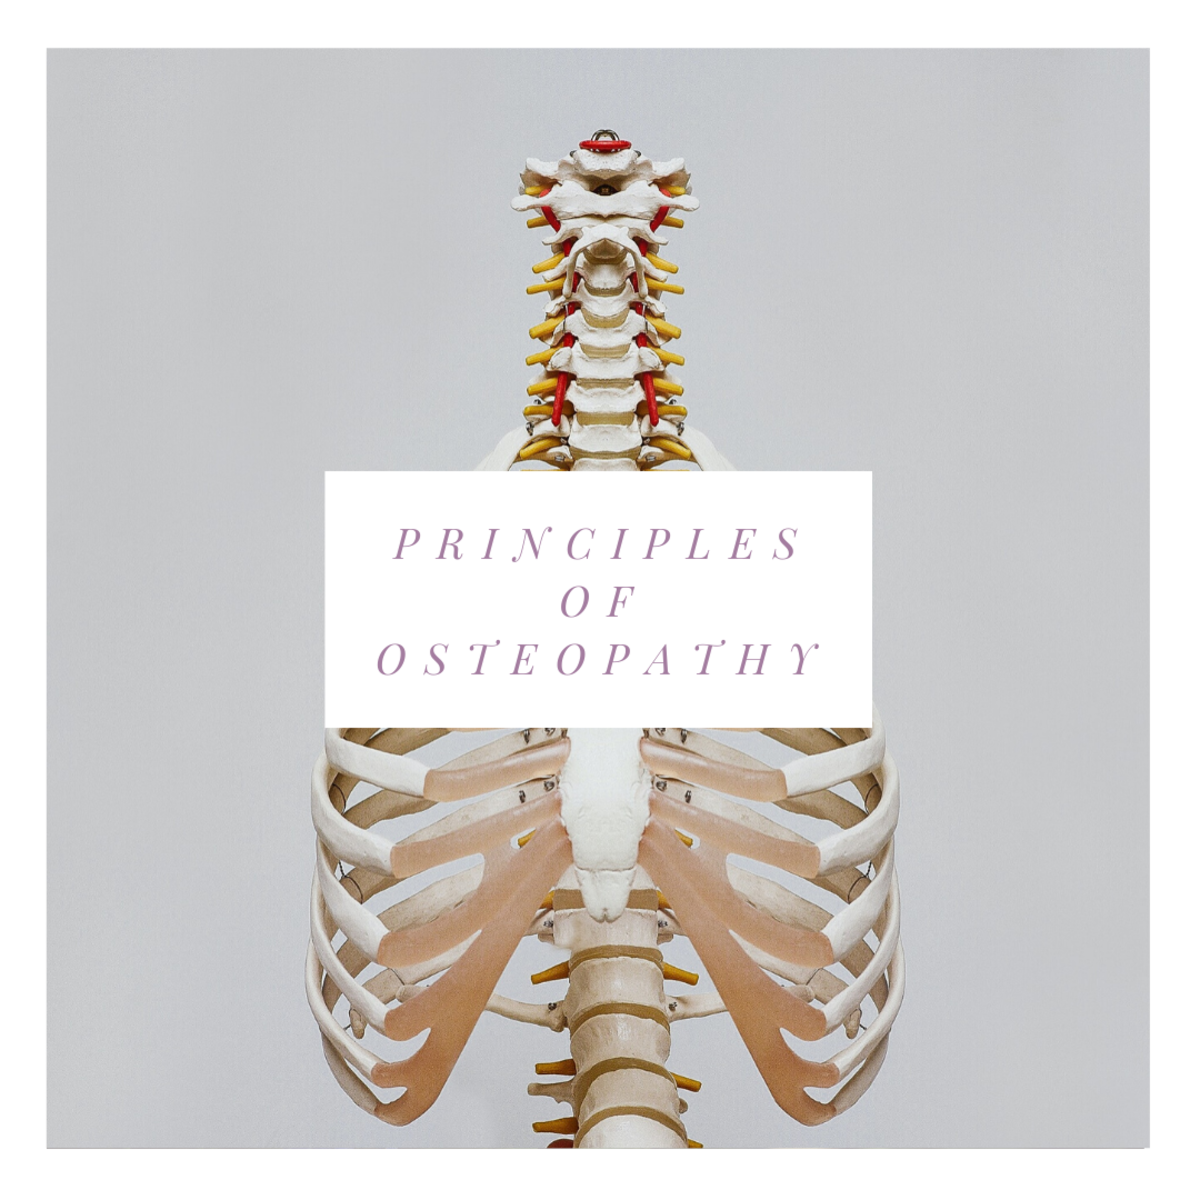 The Principles of Osteopathy